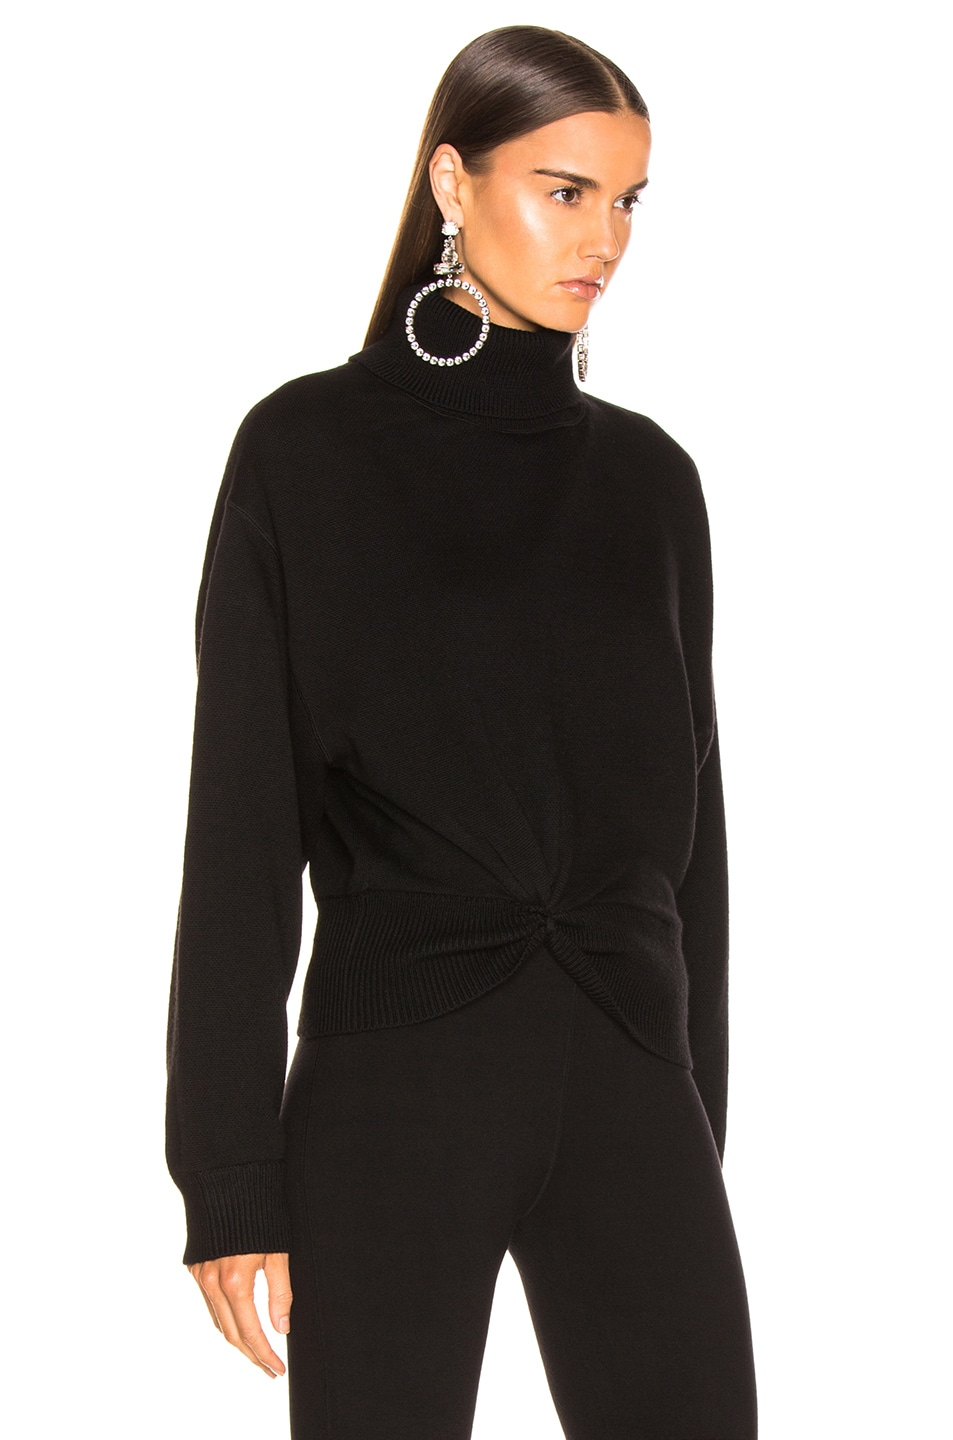 T by Alexander Wang Double Layered Turtleneck Sweater Black 85%OFF